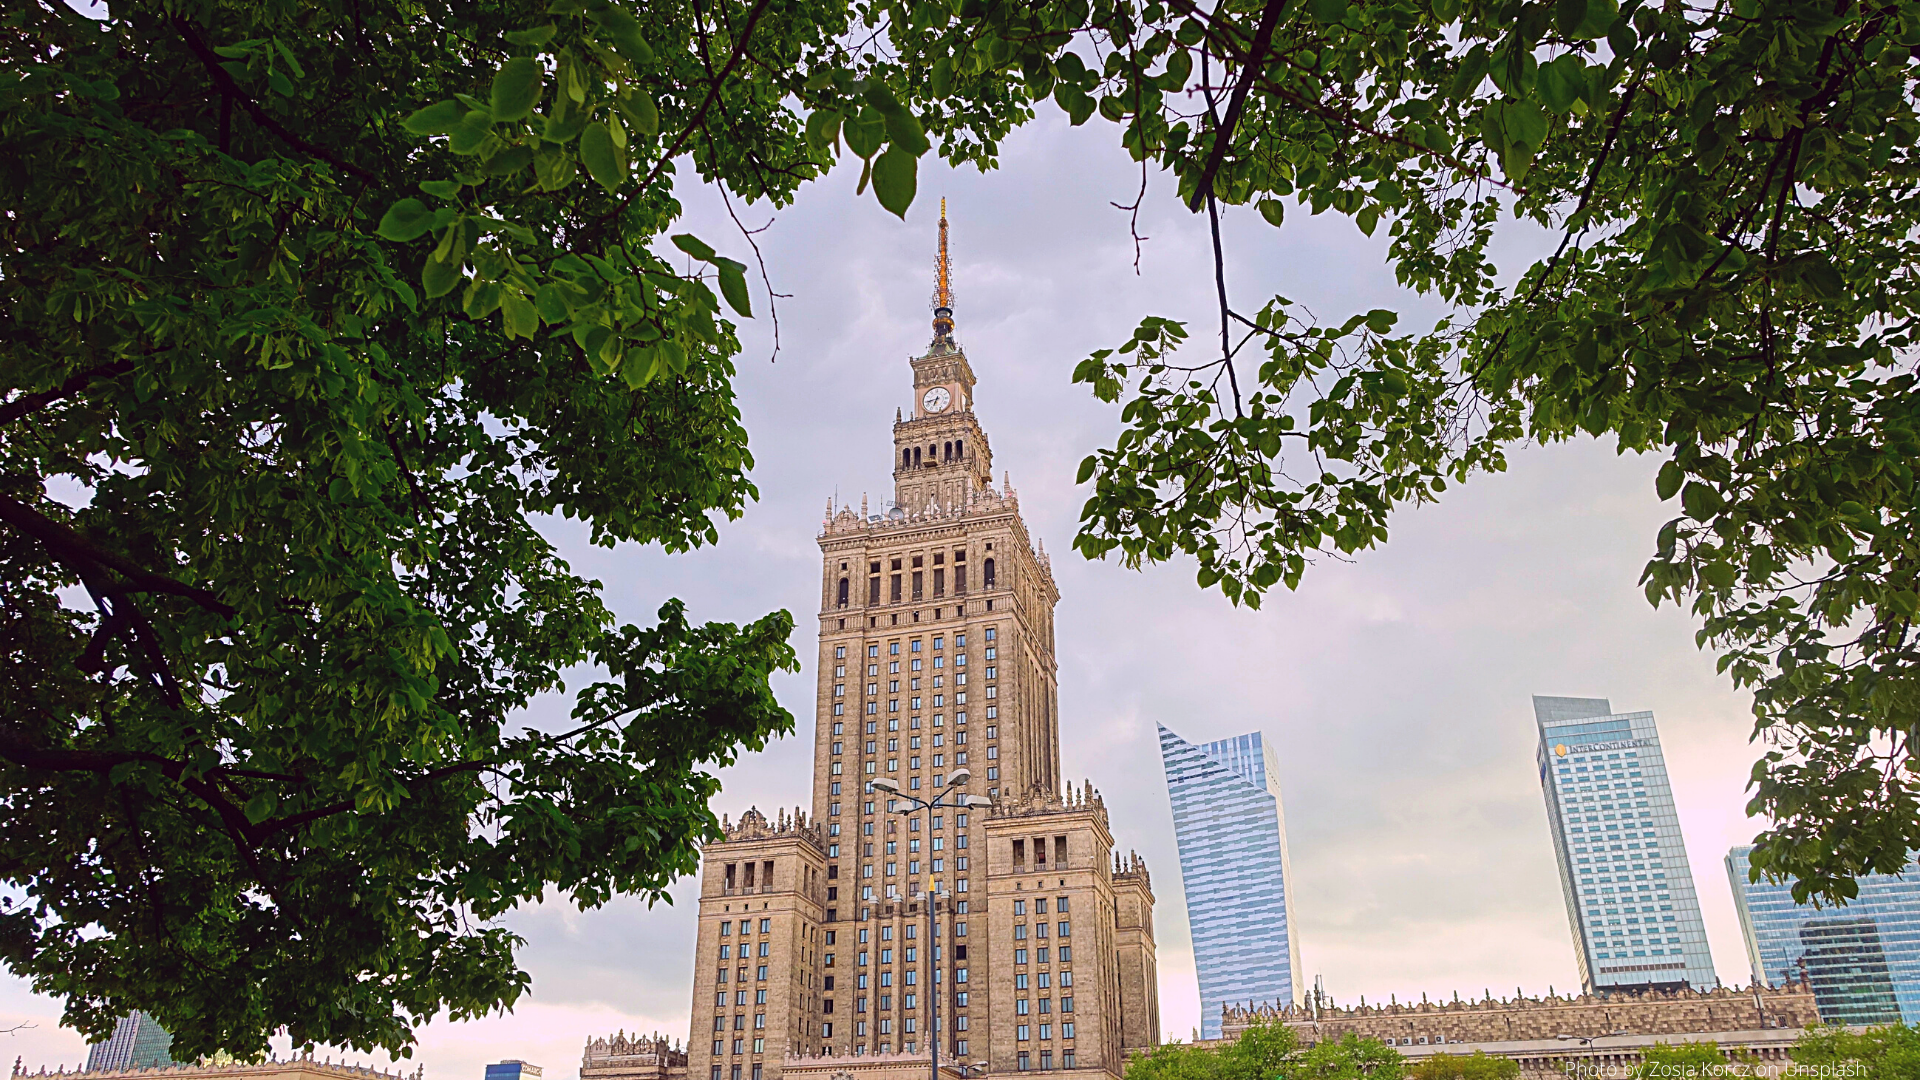 Photo of the Palace of Culture in Warsaw, an example of Socialist Architecture by Zosia Korcz on Unsplash